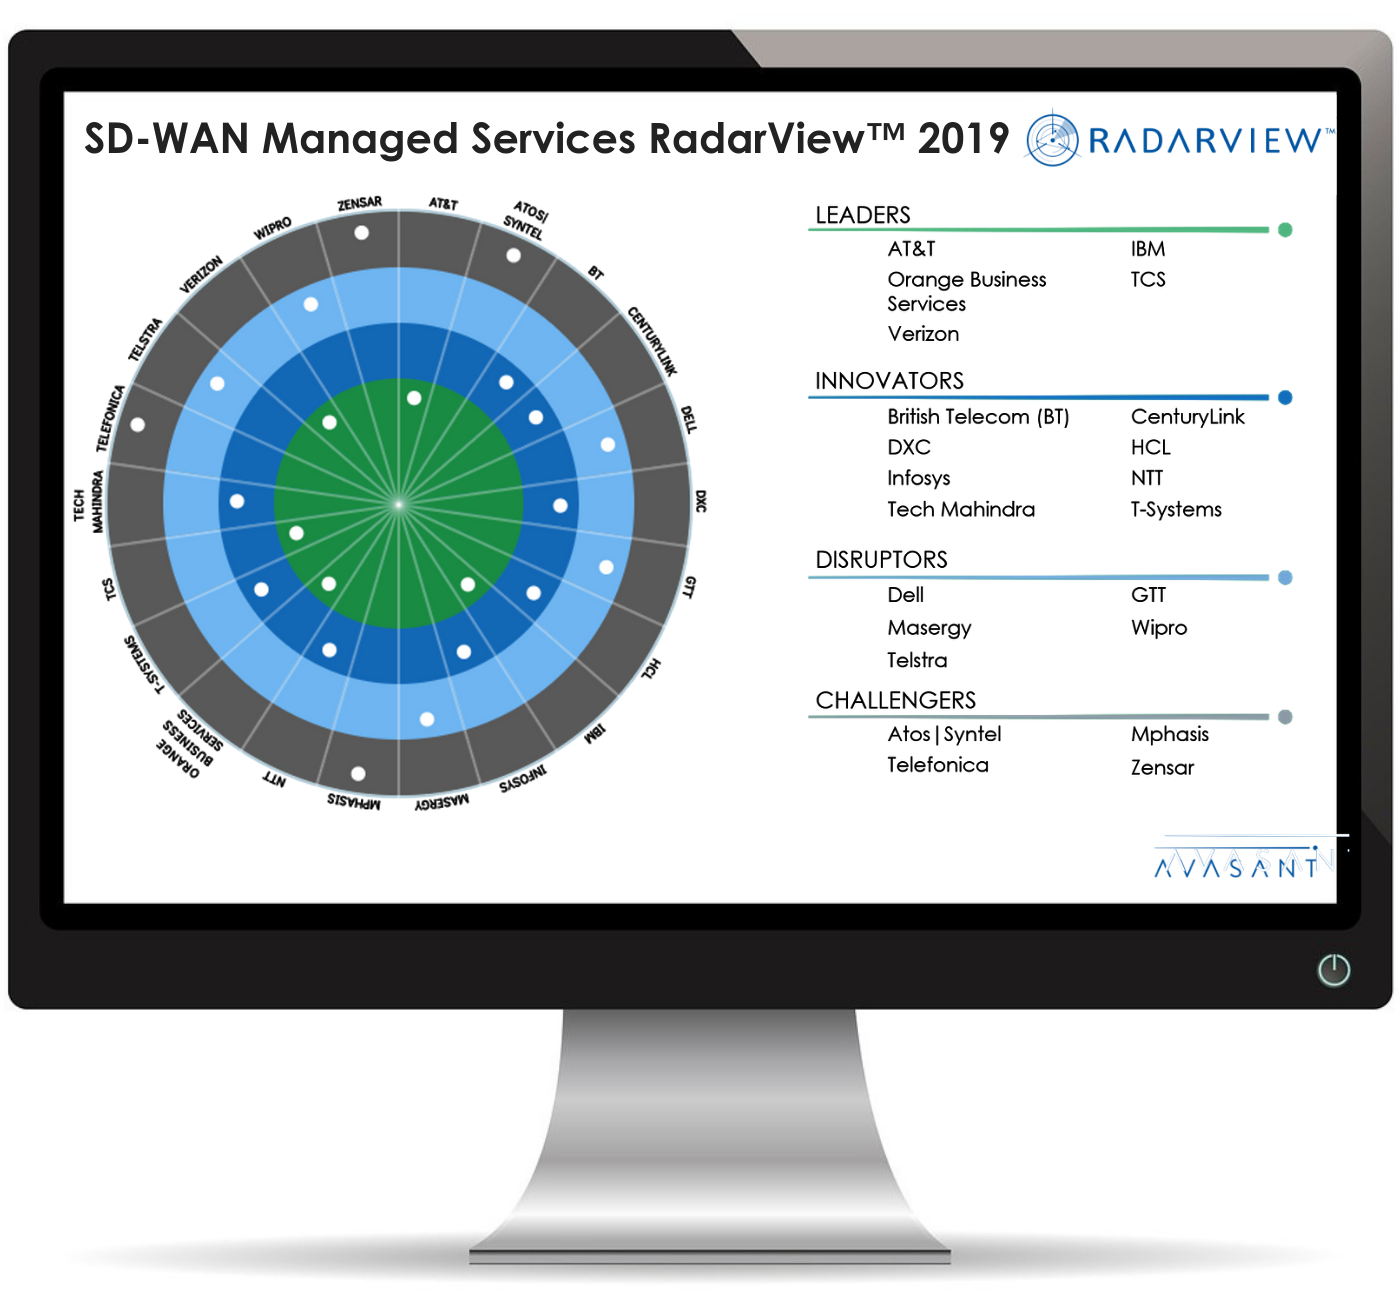 SD Wan Main Graphic 1 - SD-WAN Managed Services 2019 IBM RadarView™ Profile